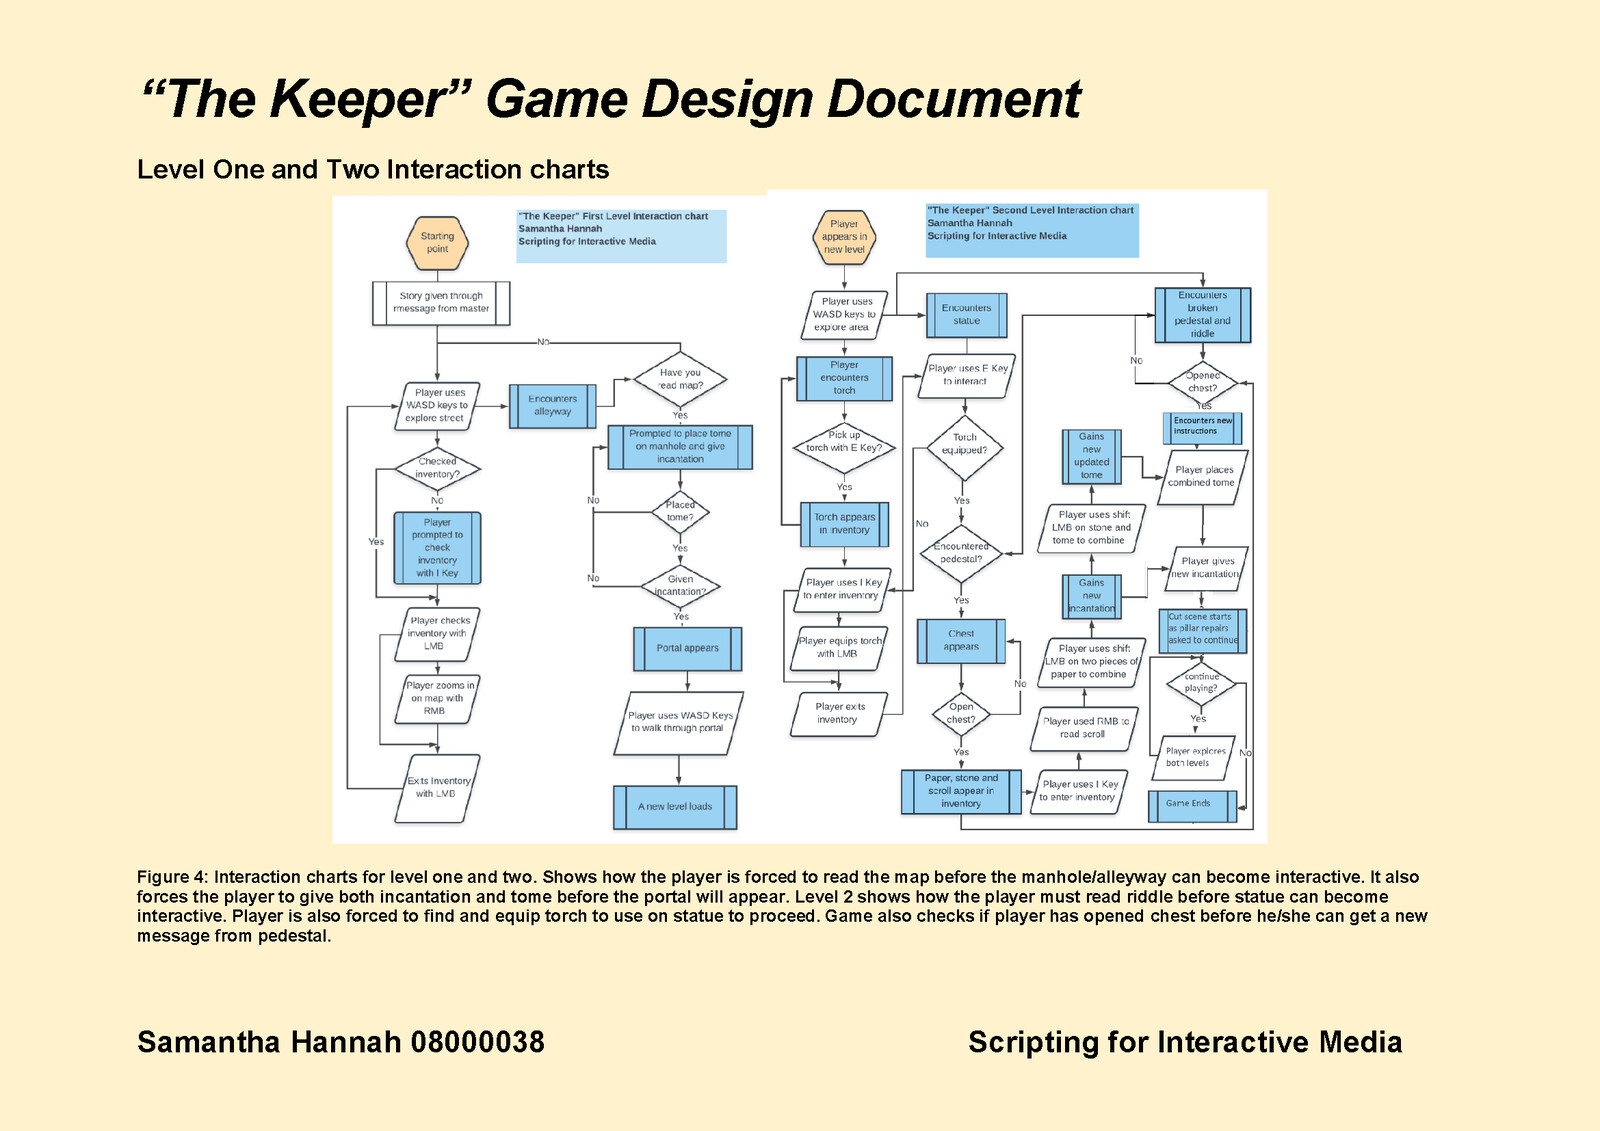 Game Design Document Page 8